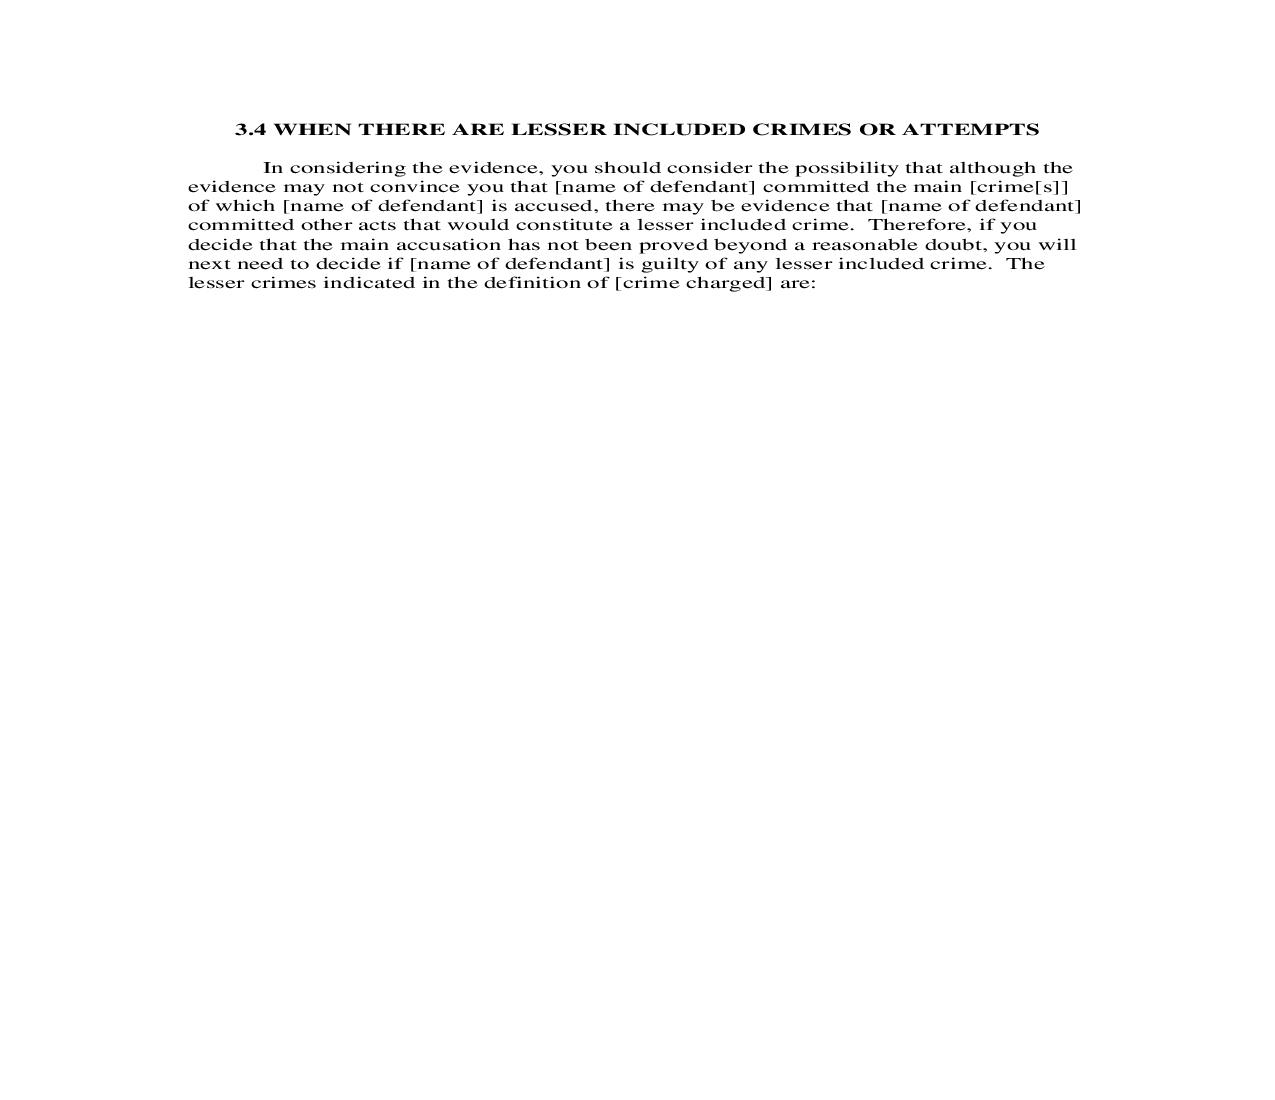 3.4. When there are Lesser Included Crimes or Attempts | Pdf Doc Docx | Florida_JI